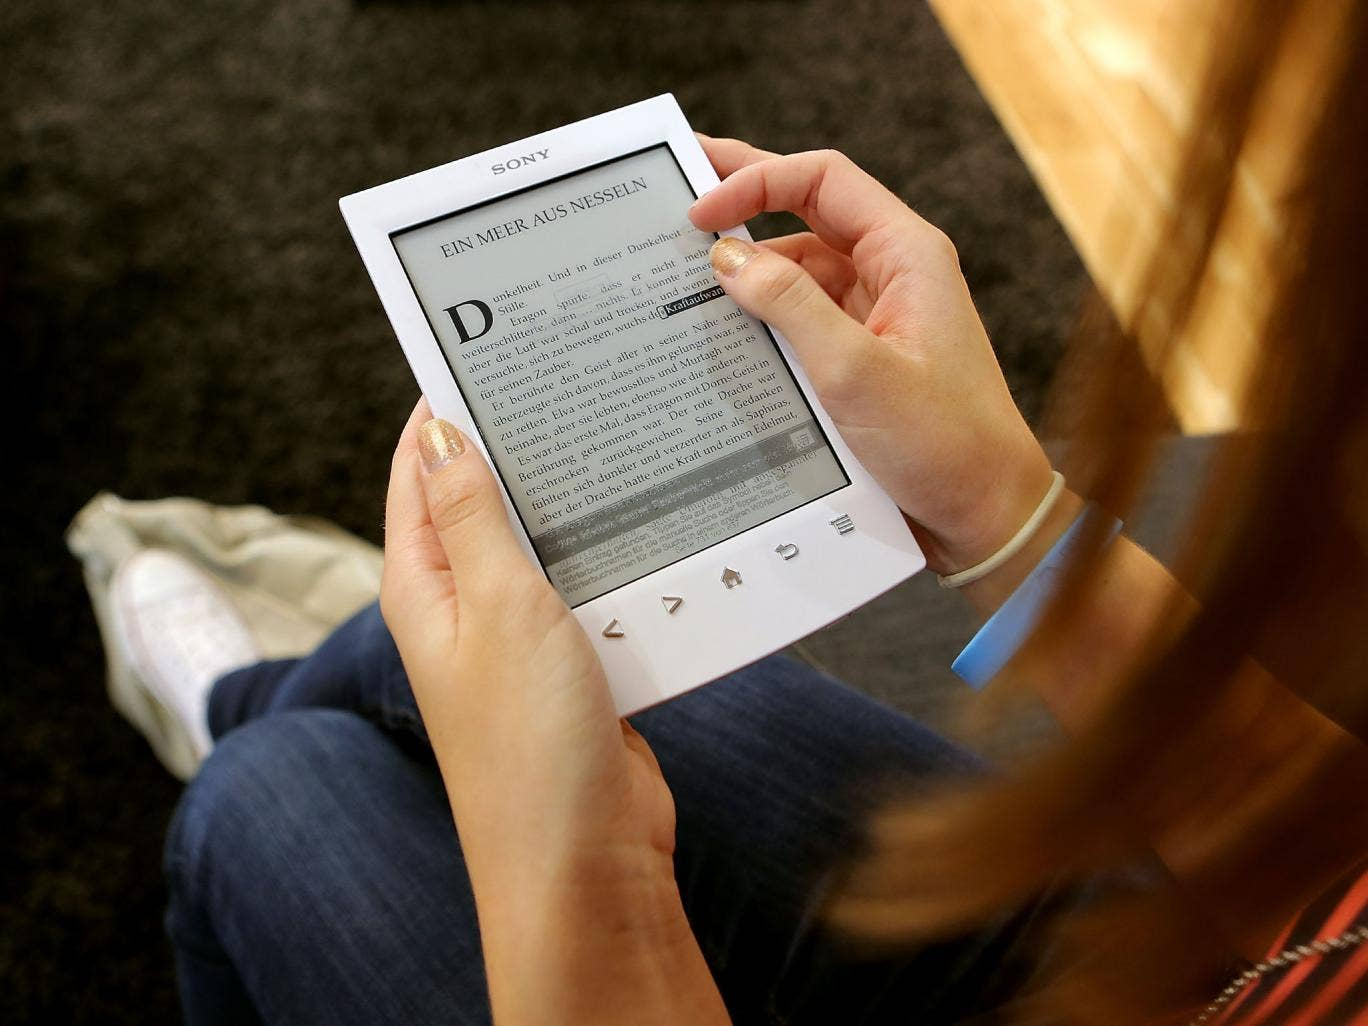 Americans have fallen in love with e-books